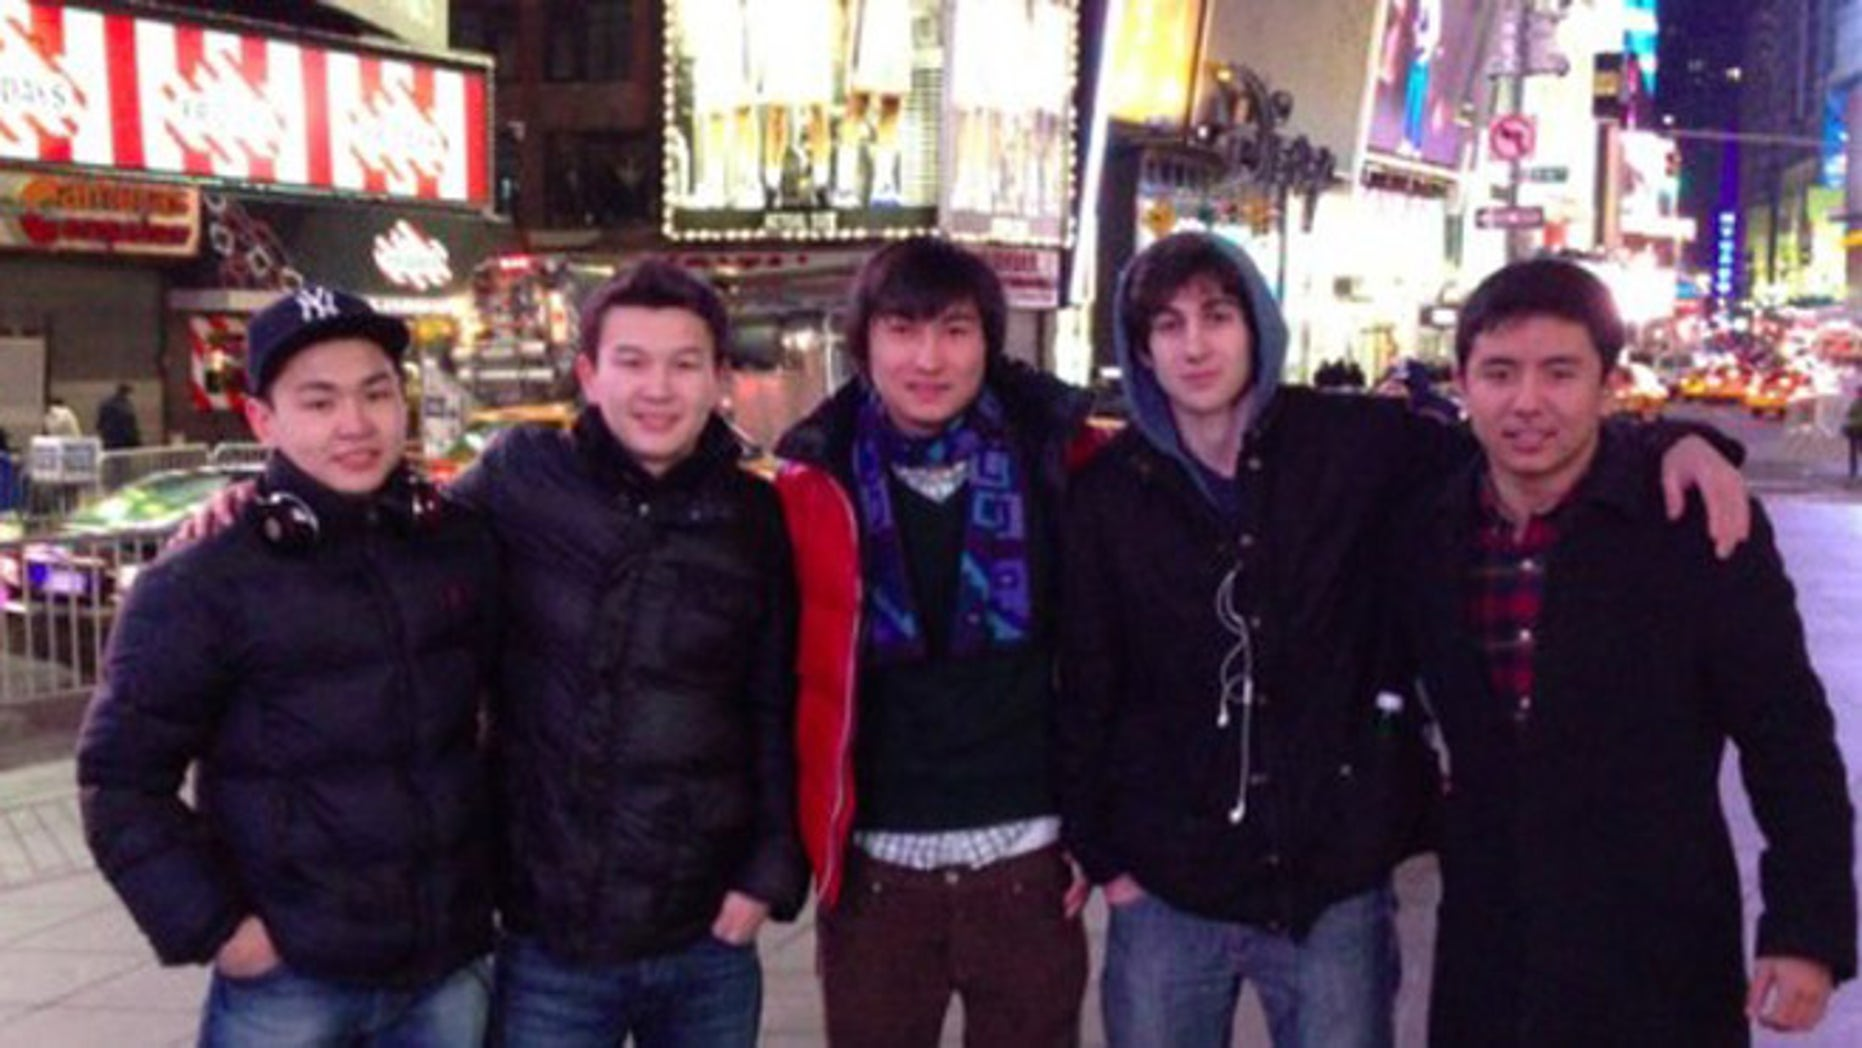 Dzhokhar Tsarnaev and older brother Tamerlan reportedly planned to drive to NYC after their deadly Boston attack to detonate devices in Times Square, which Dzhokhar visited earlier with friends. None of the others pictured here are suspected of being involved in the Tsarnaevs' plot. Dias Kadyrbayev is standing left of Dzhokhar's right in the blue scarf, and Azamat Tazhayakov is immediately left of Kadyrbayev.